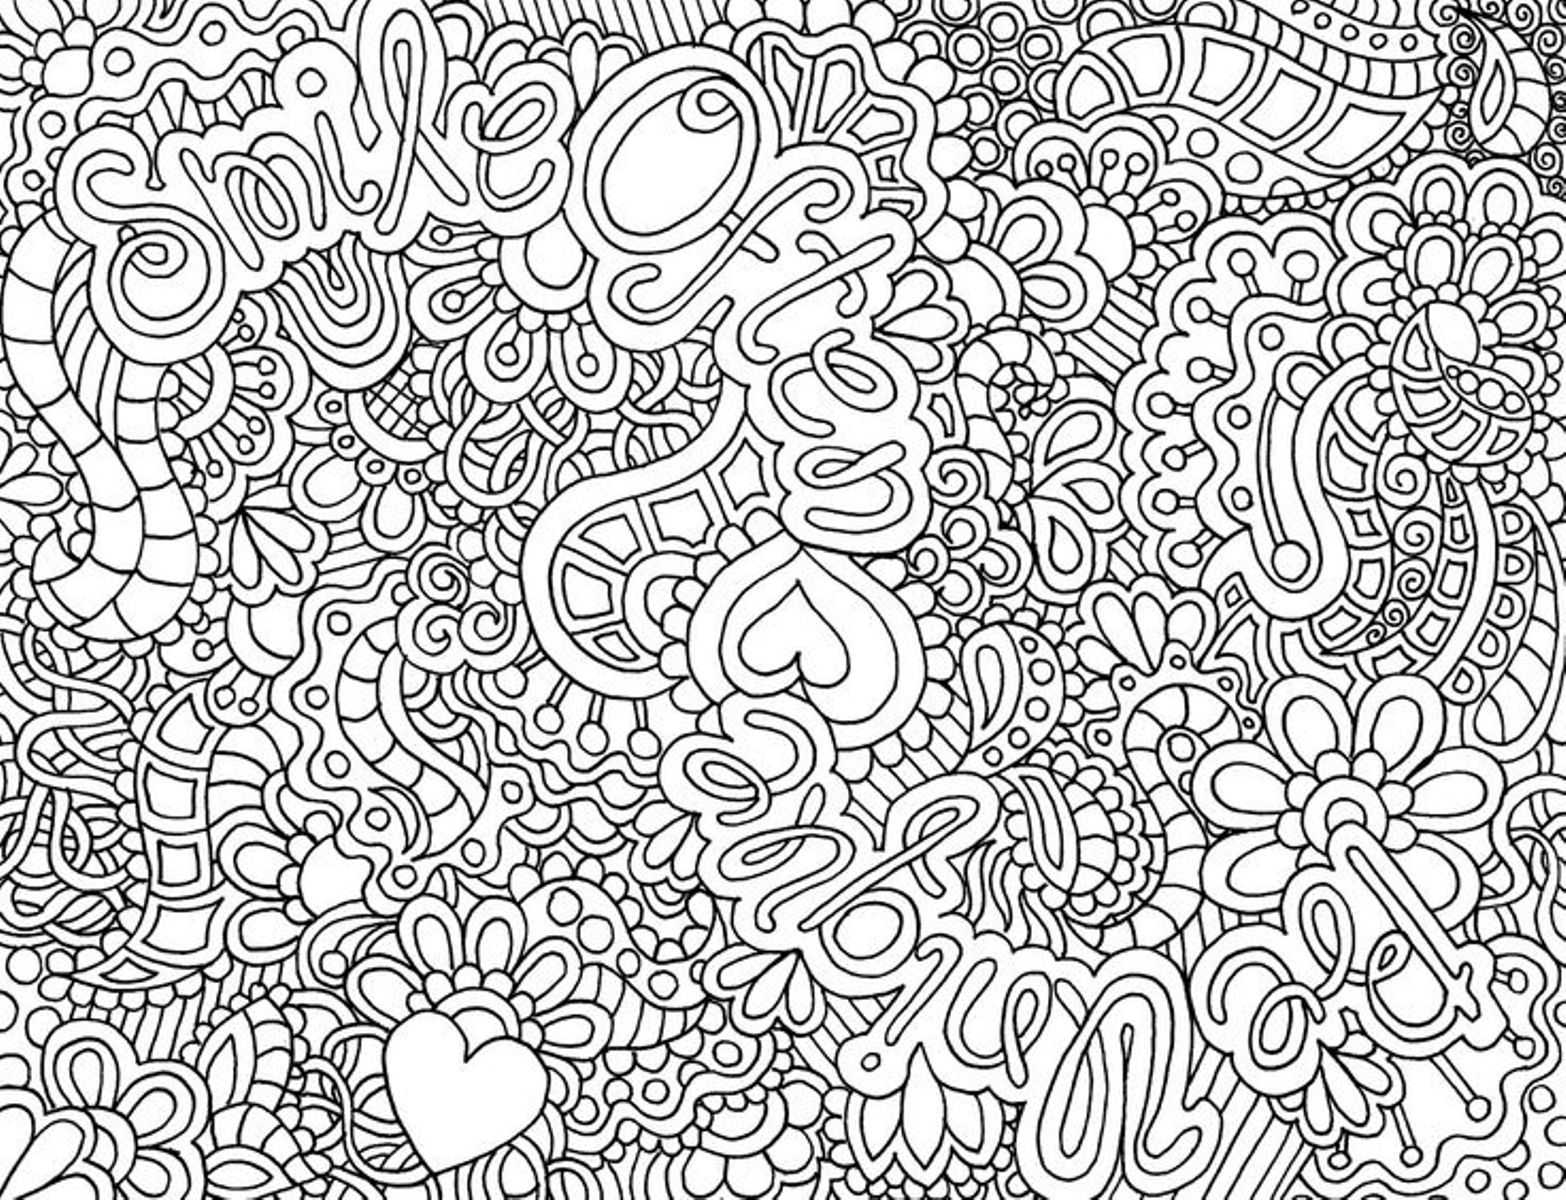 Difficult Adult Coloring Pages